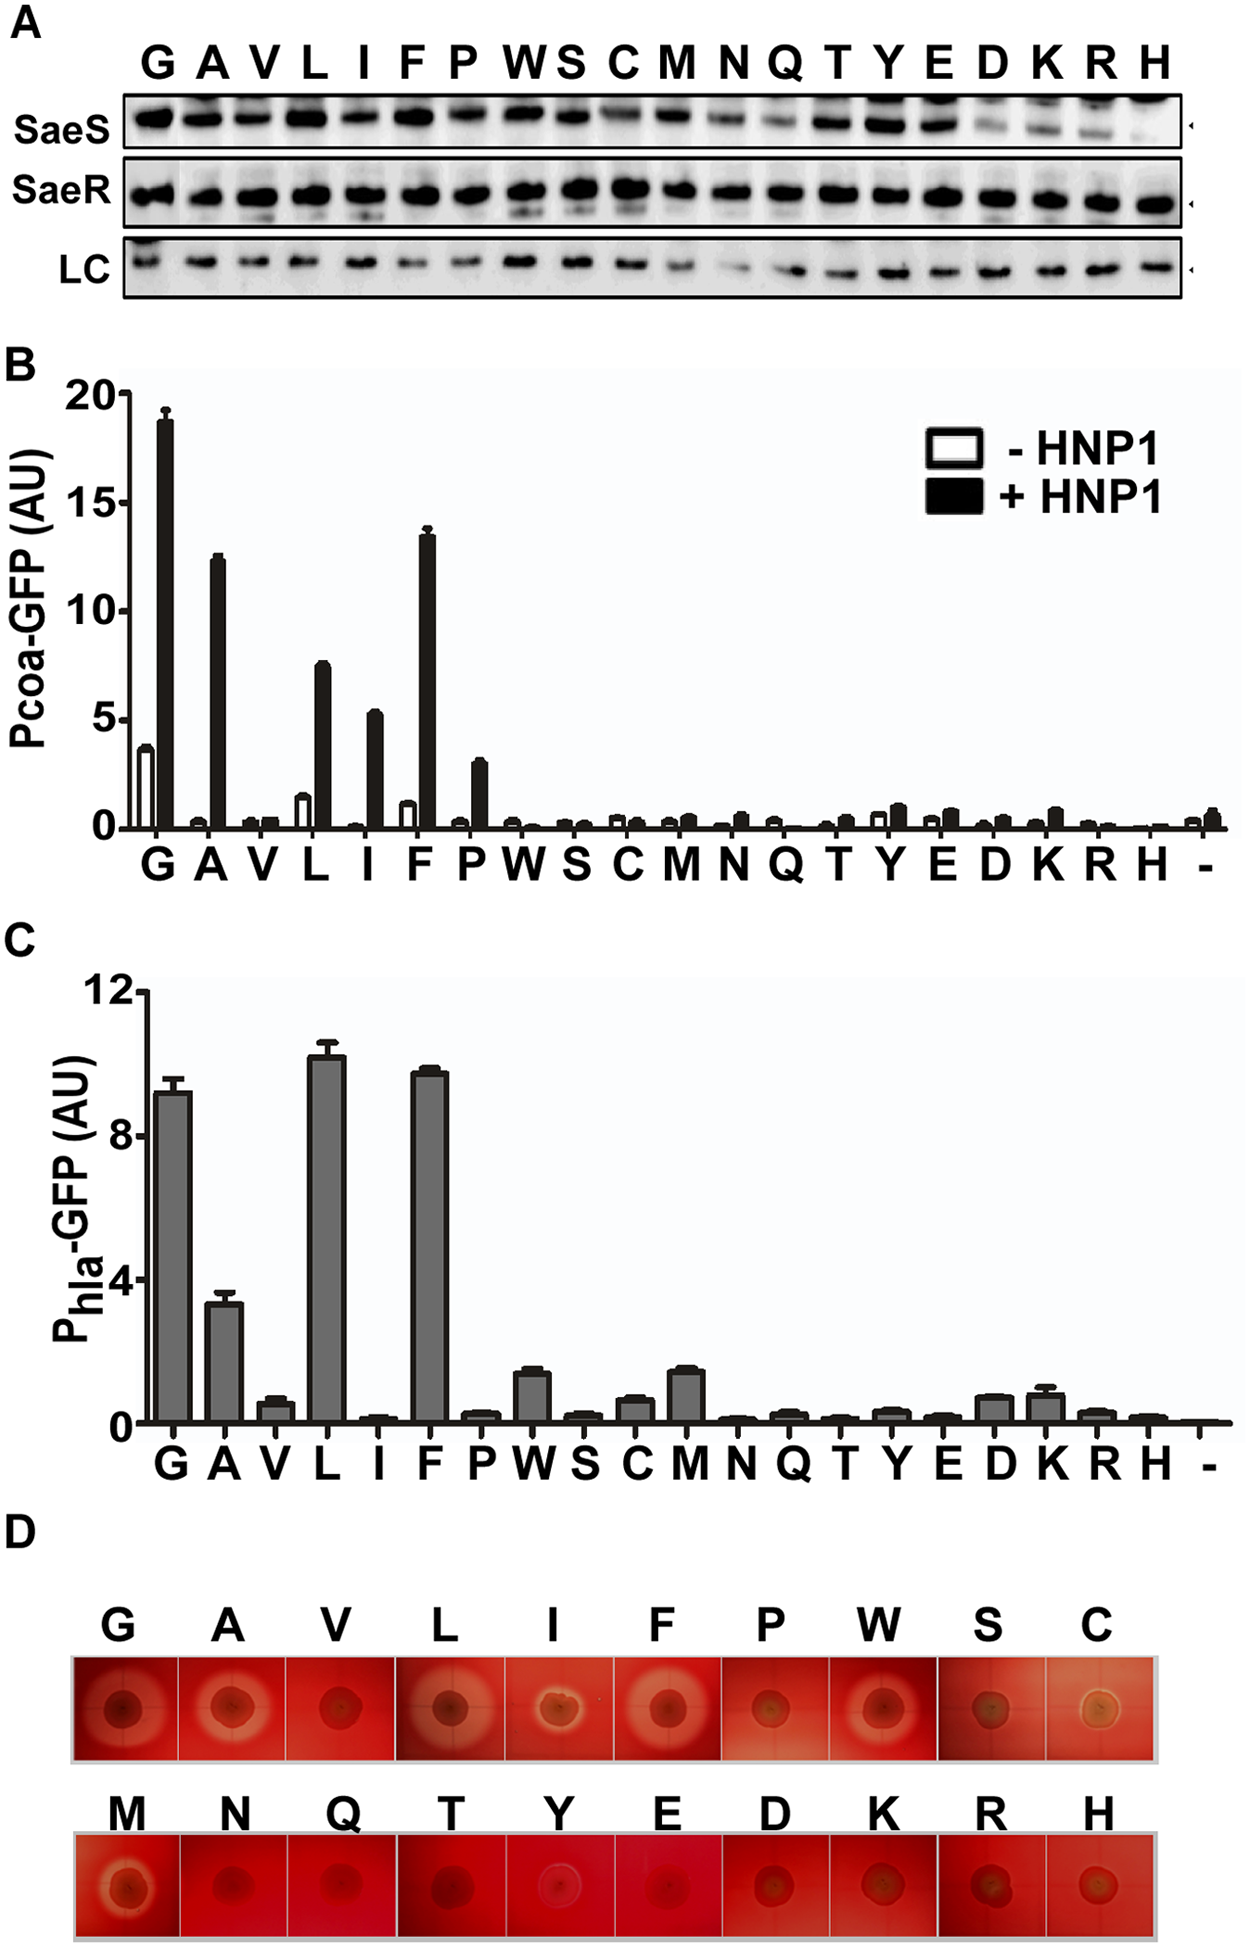 At the position 35, Gly is the optimal amino acid for SaeS switch function.